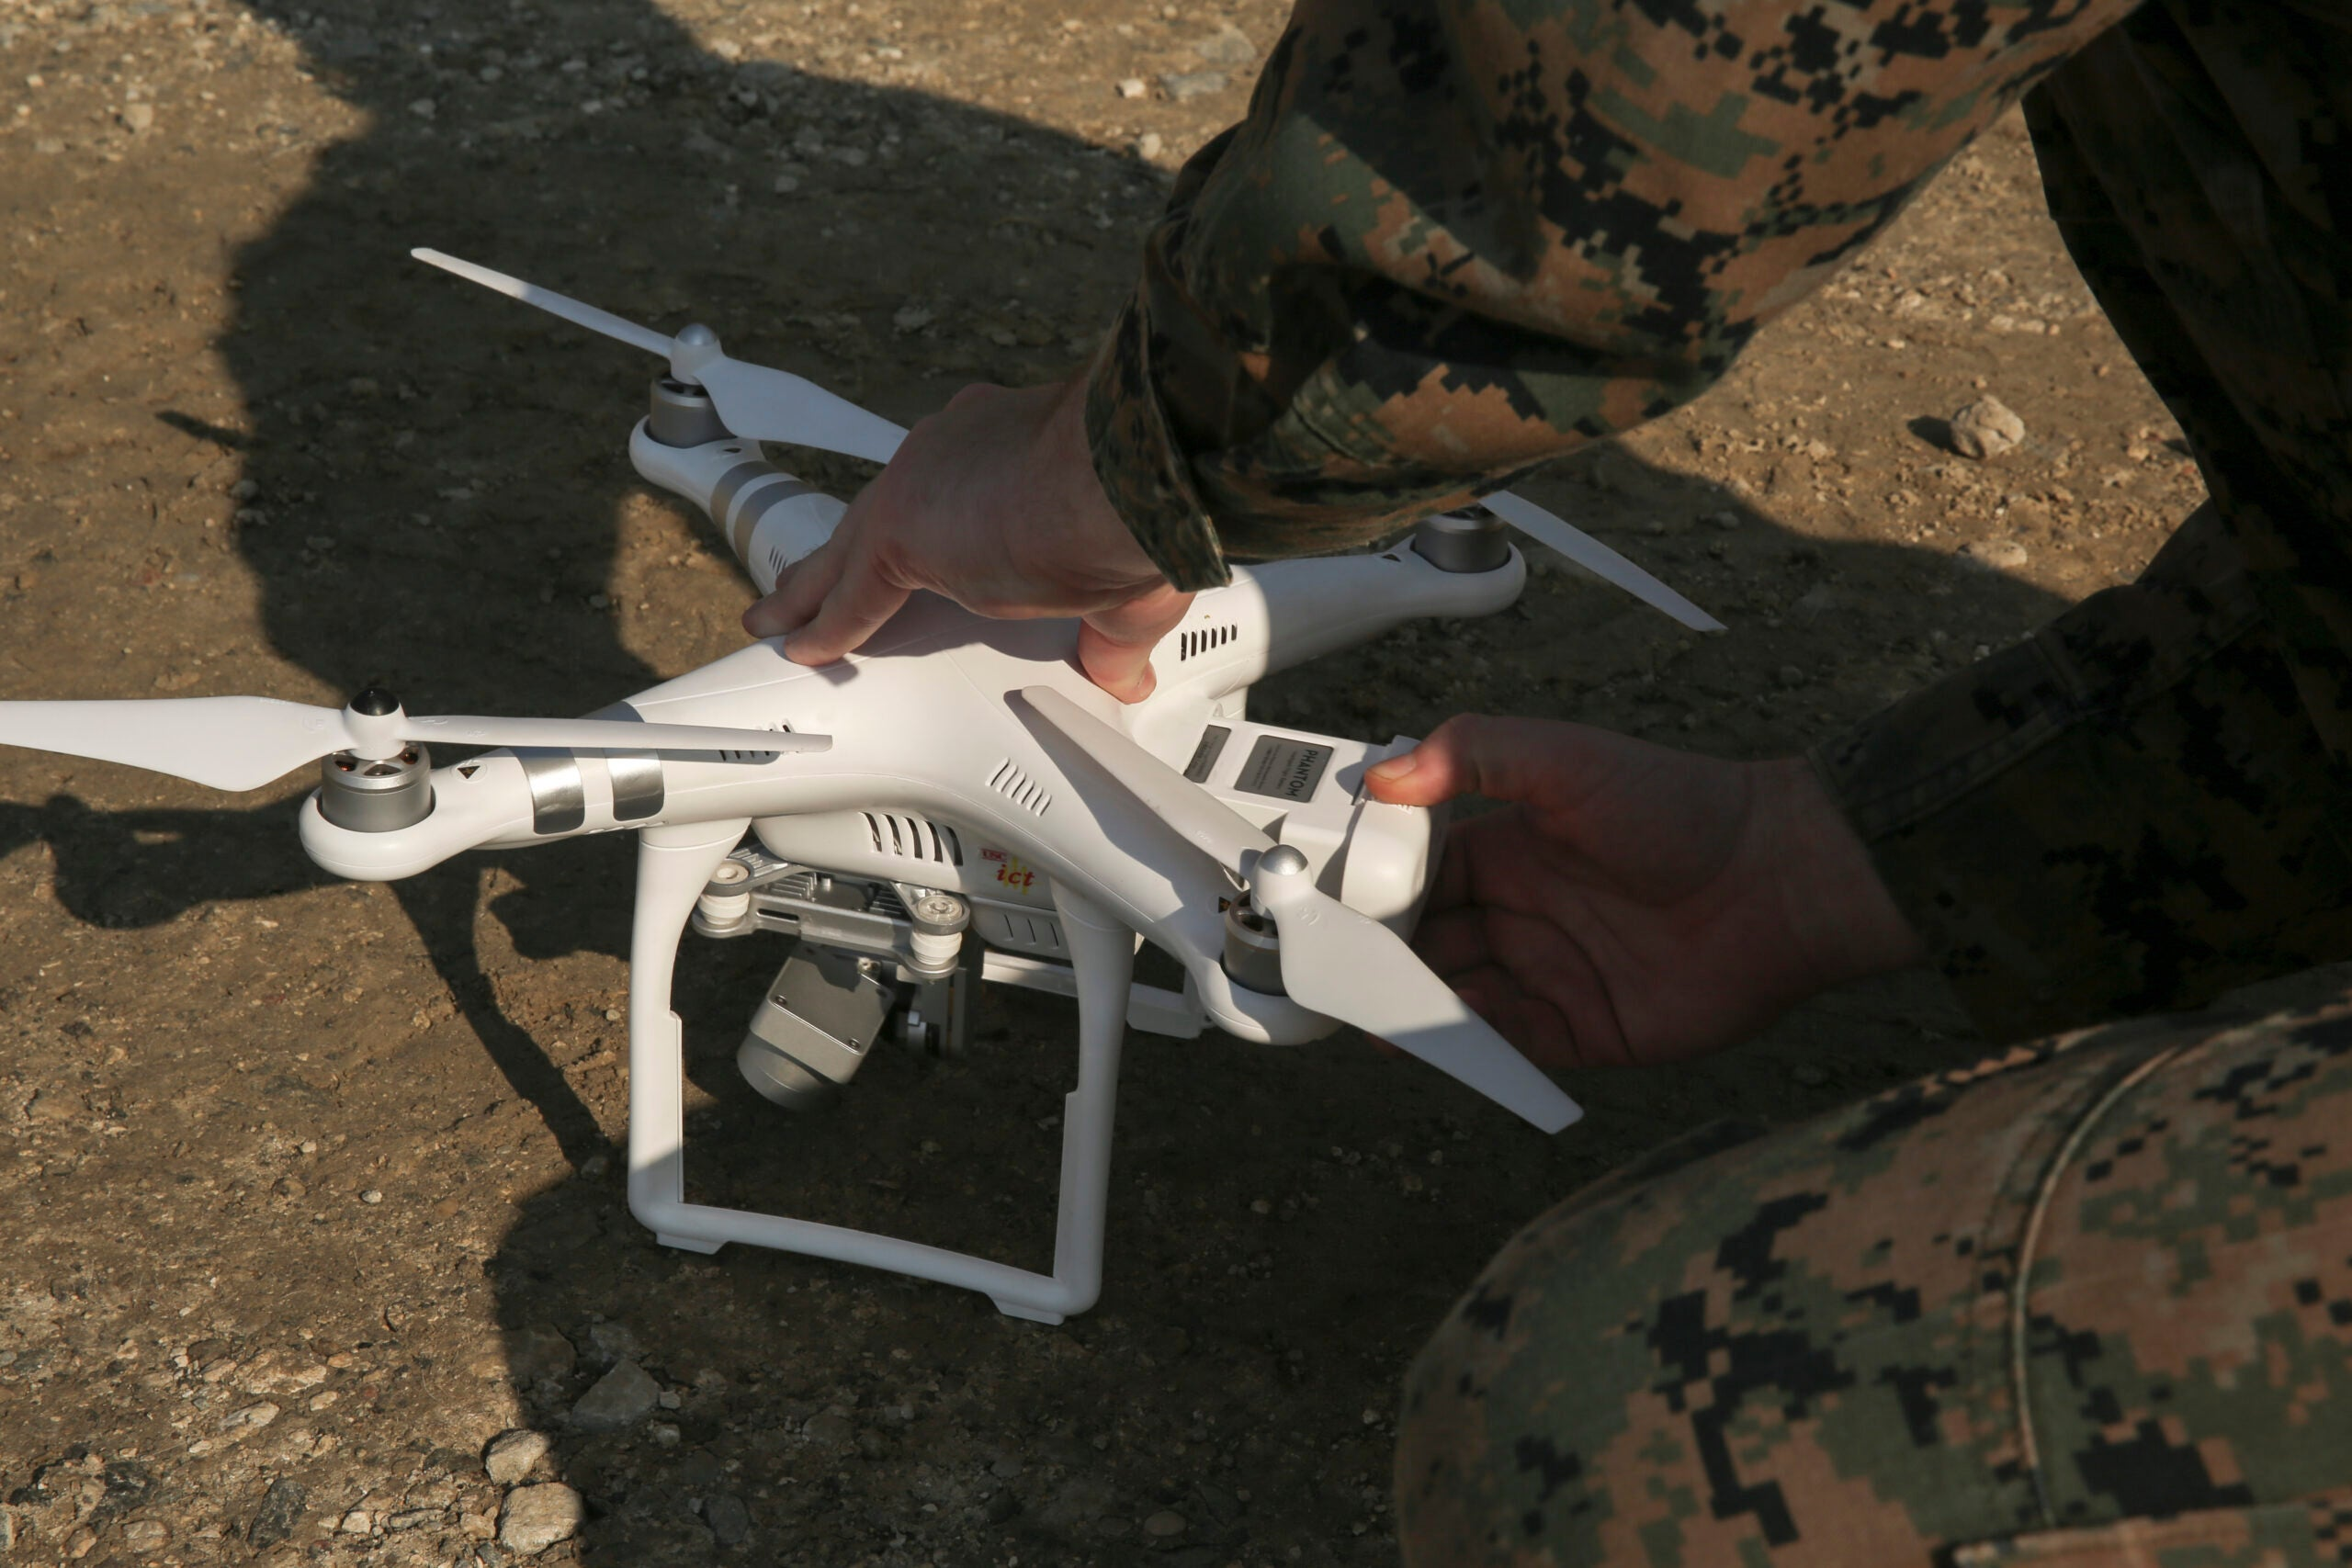 Consumer drones are causing problems for the military